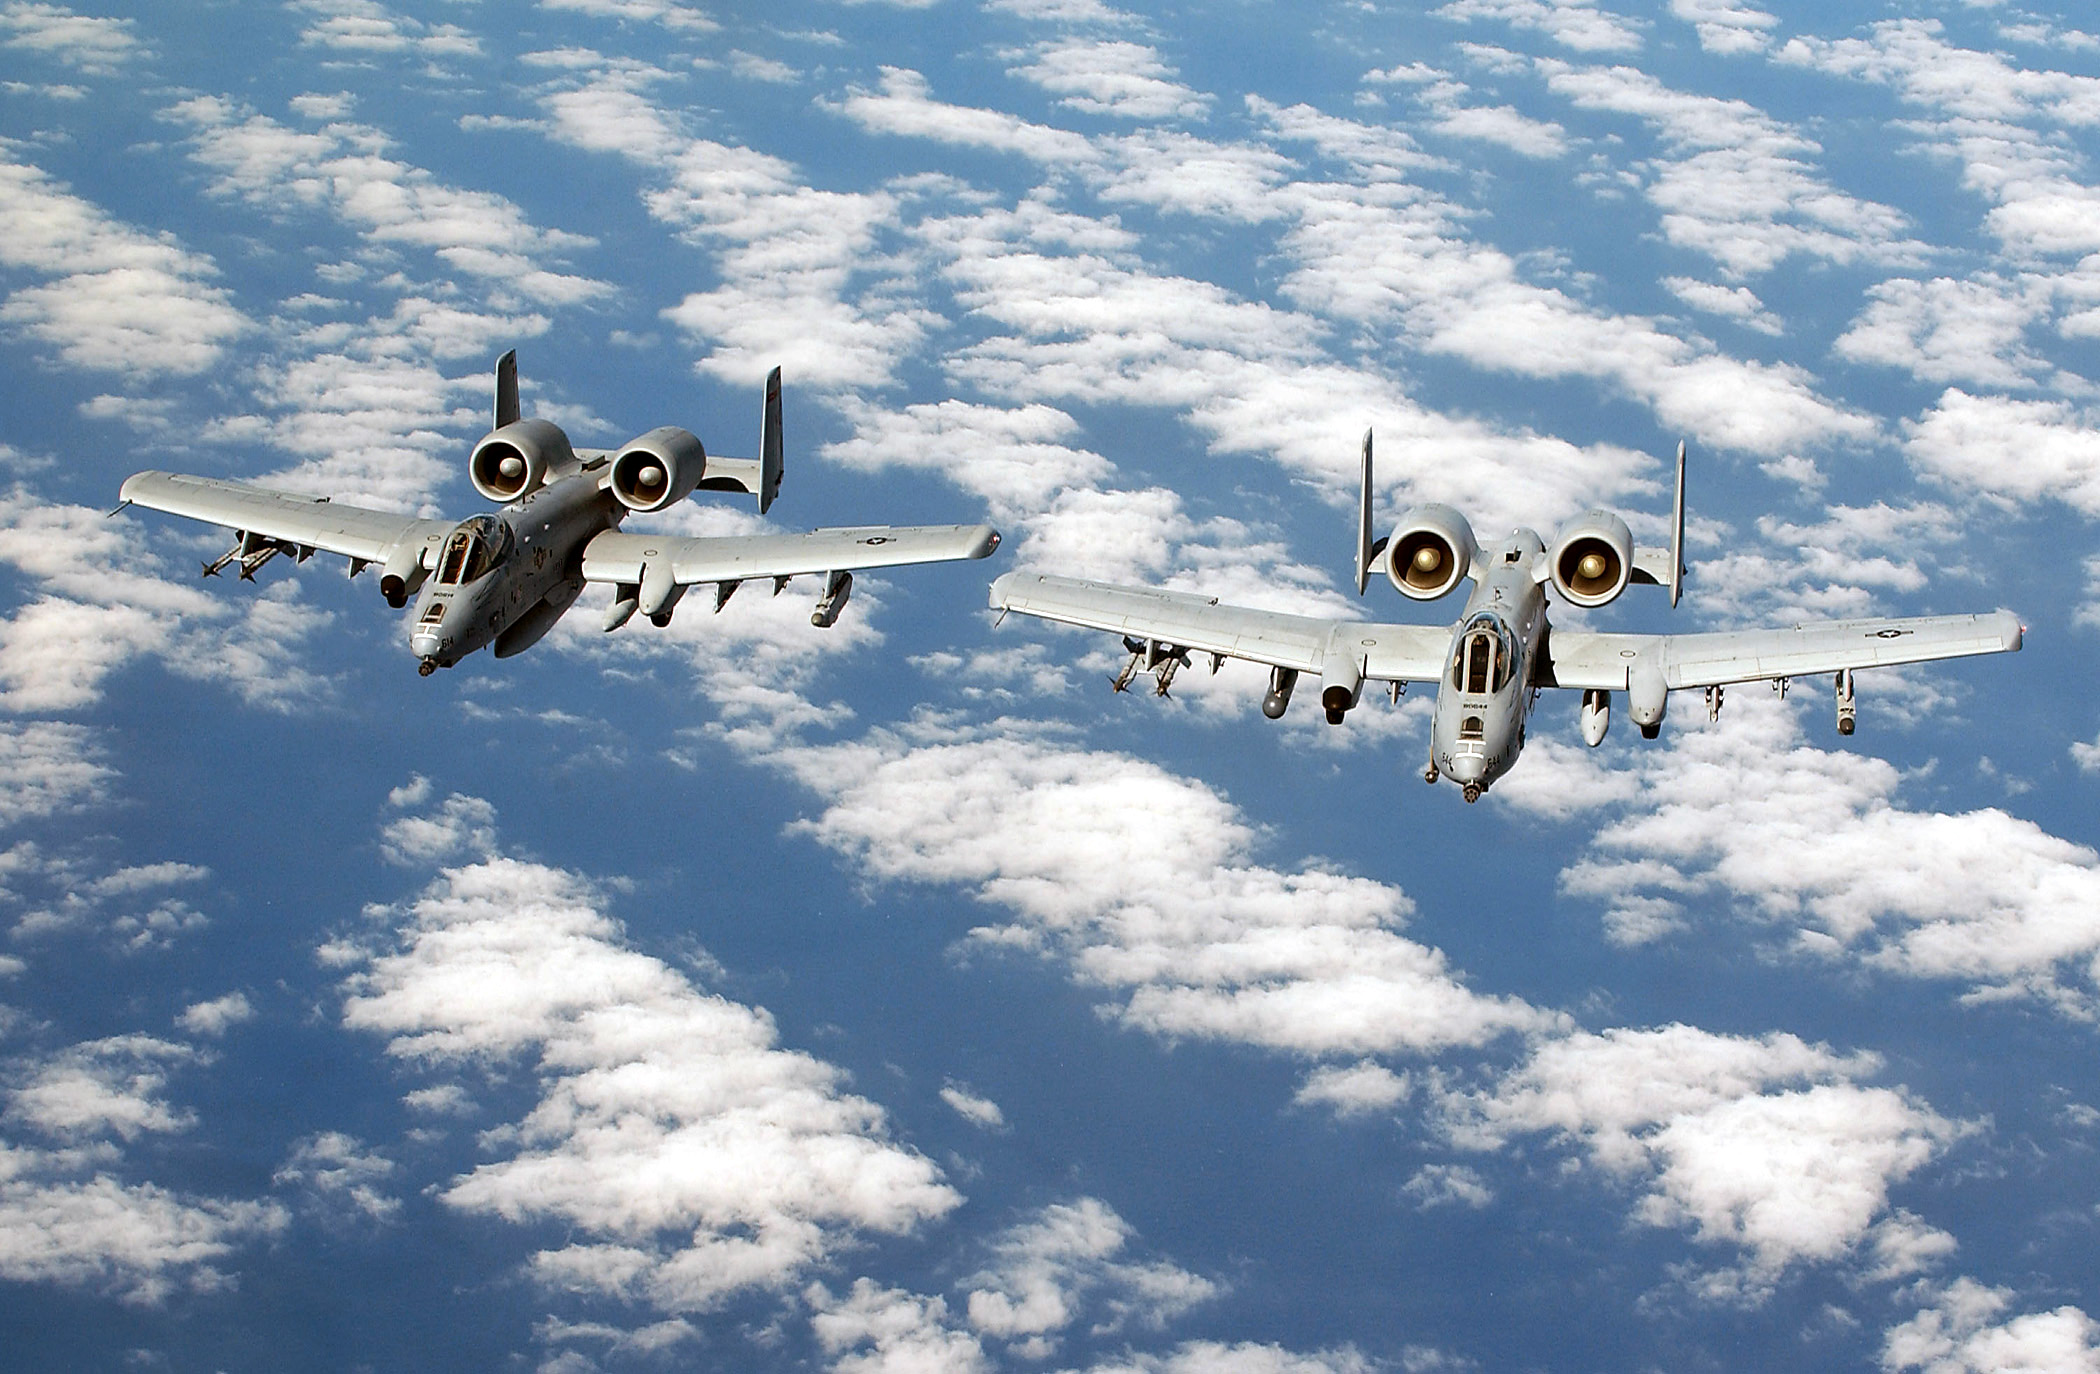 File:A-10 Thunderbolt II 2.jpg - Wikimedia Commons